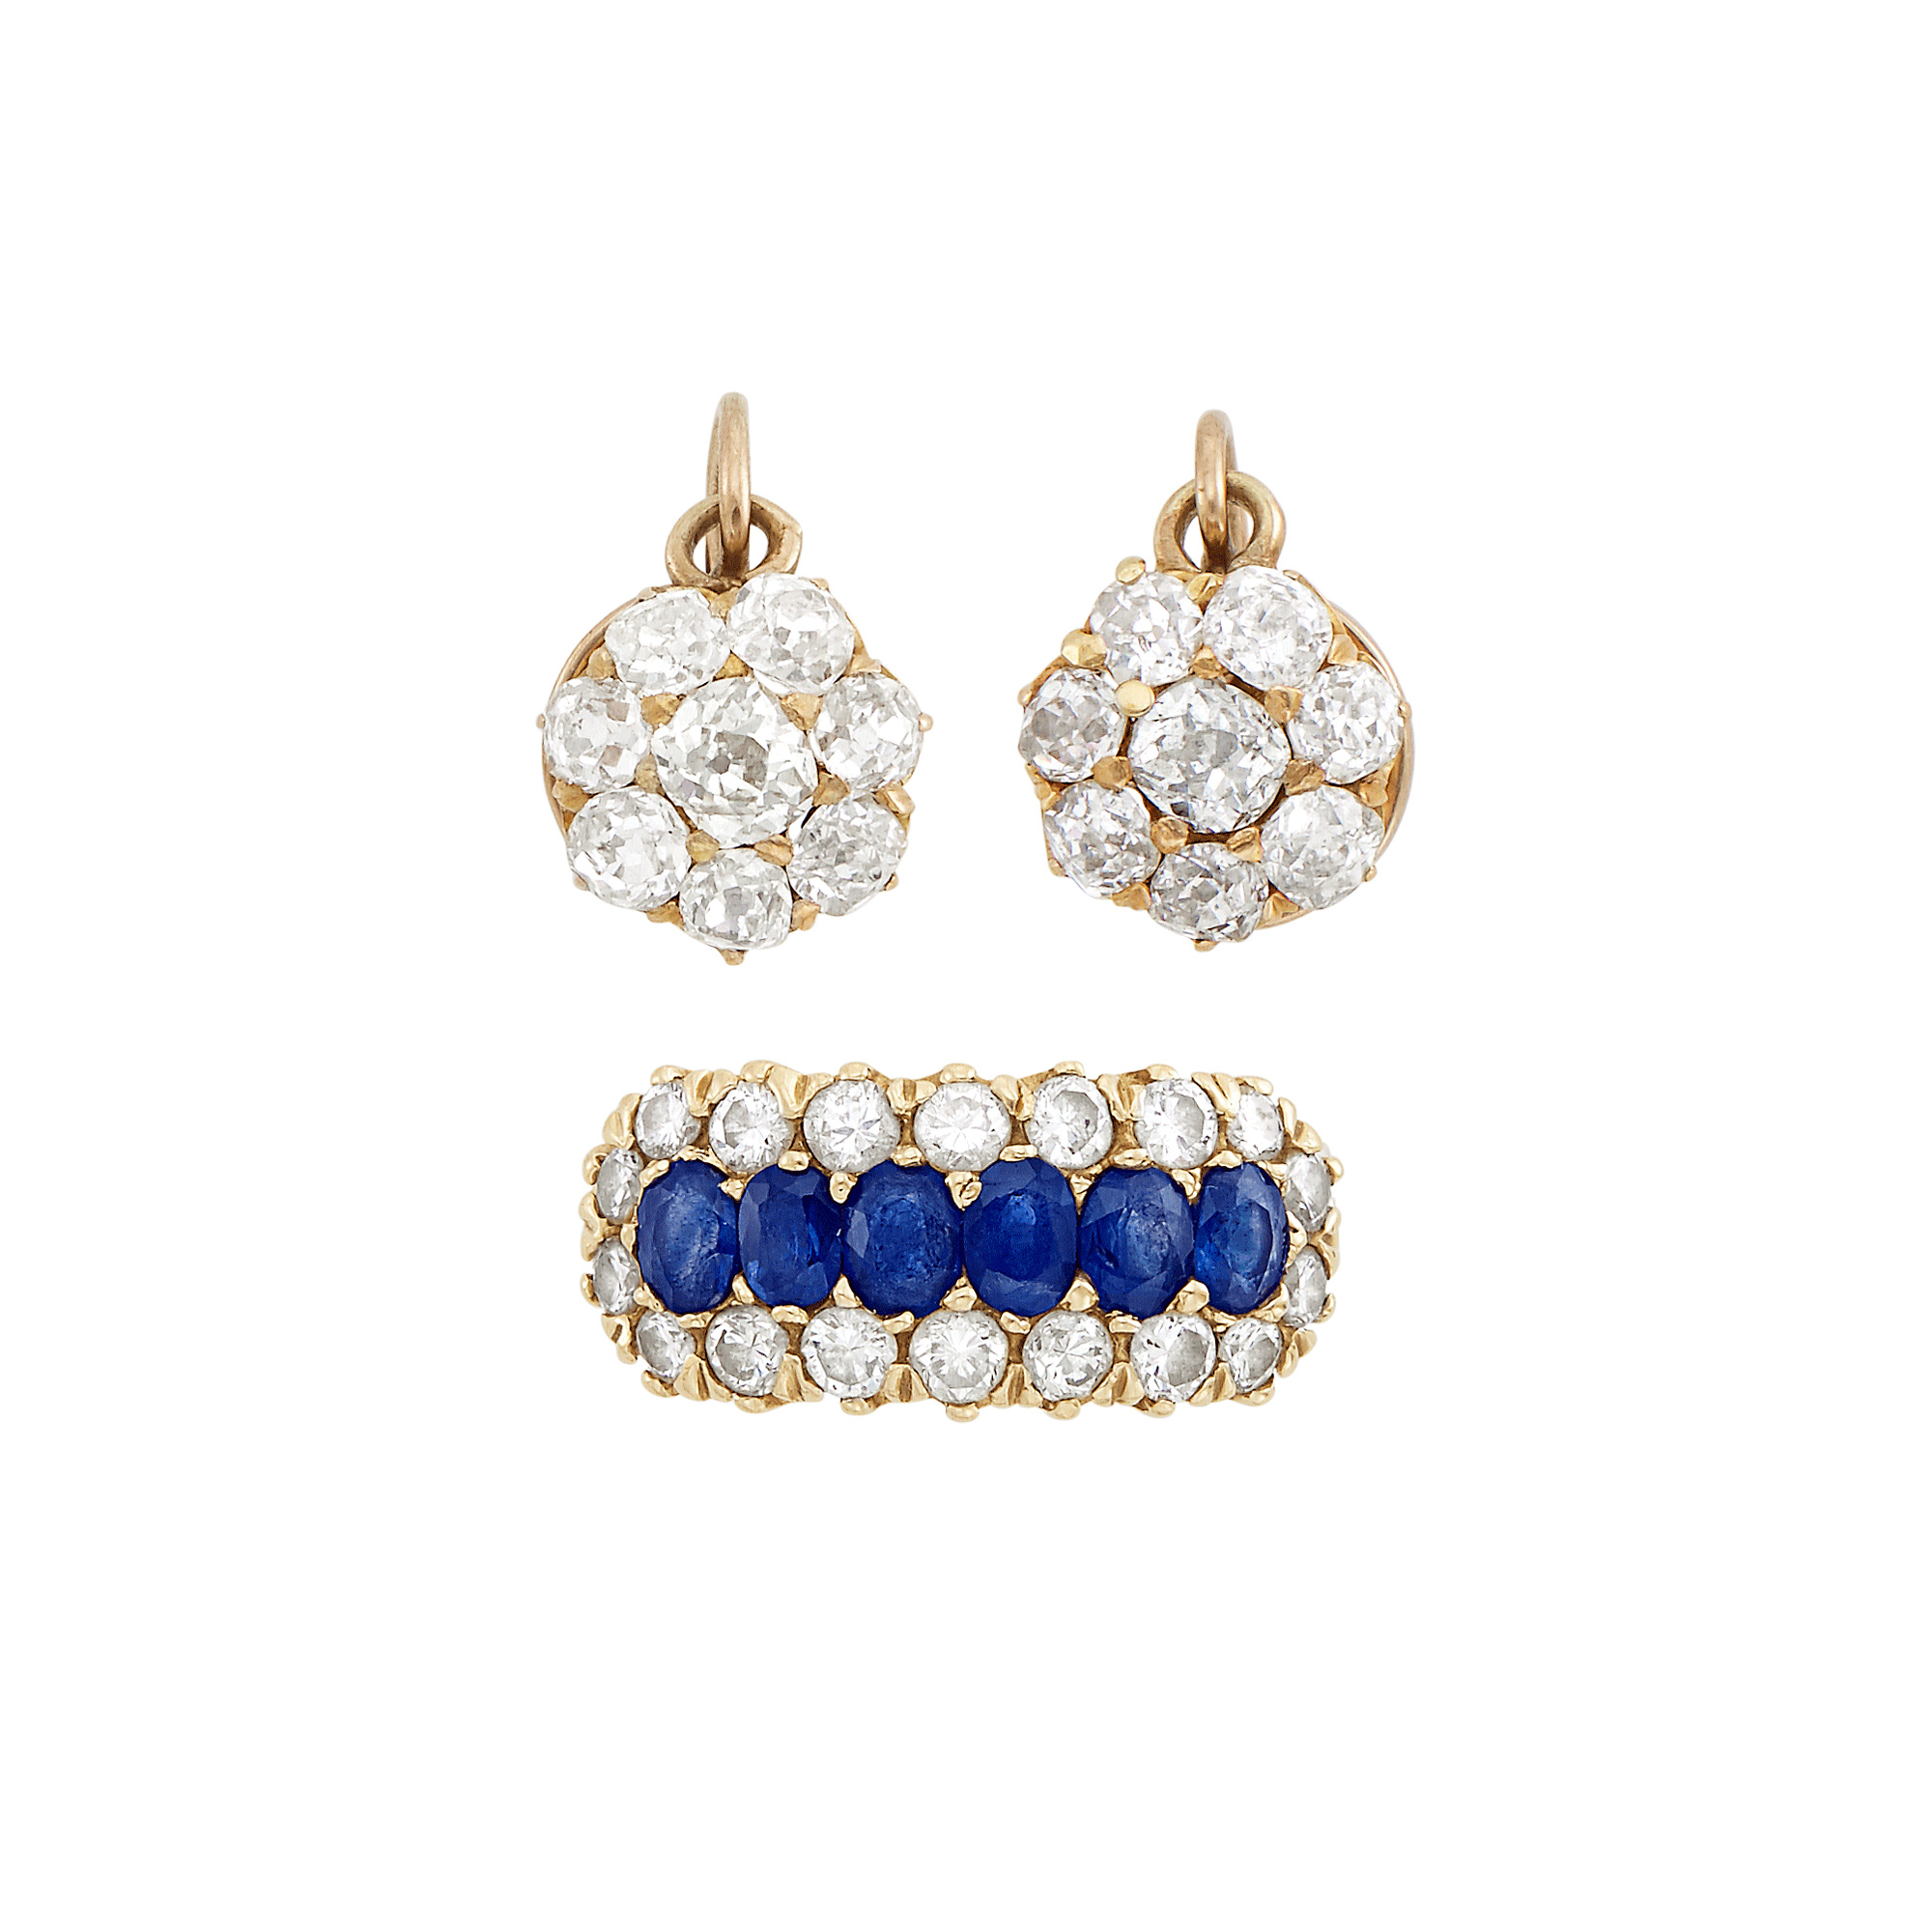 Lot image - Pair of Antique Gold and Diamond Earrings and Sapphire and Diamond Ring